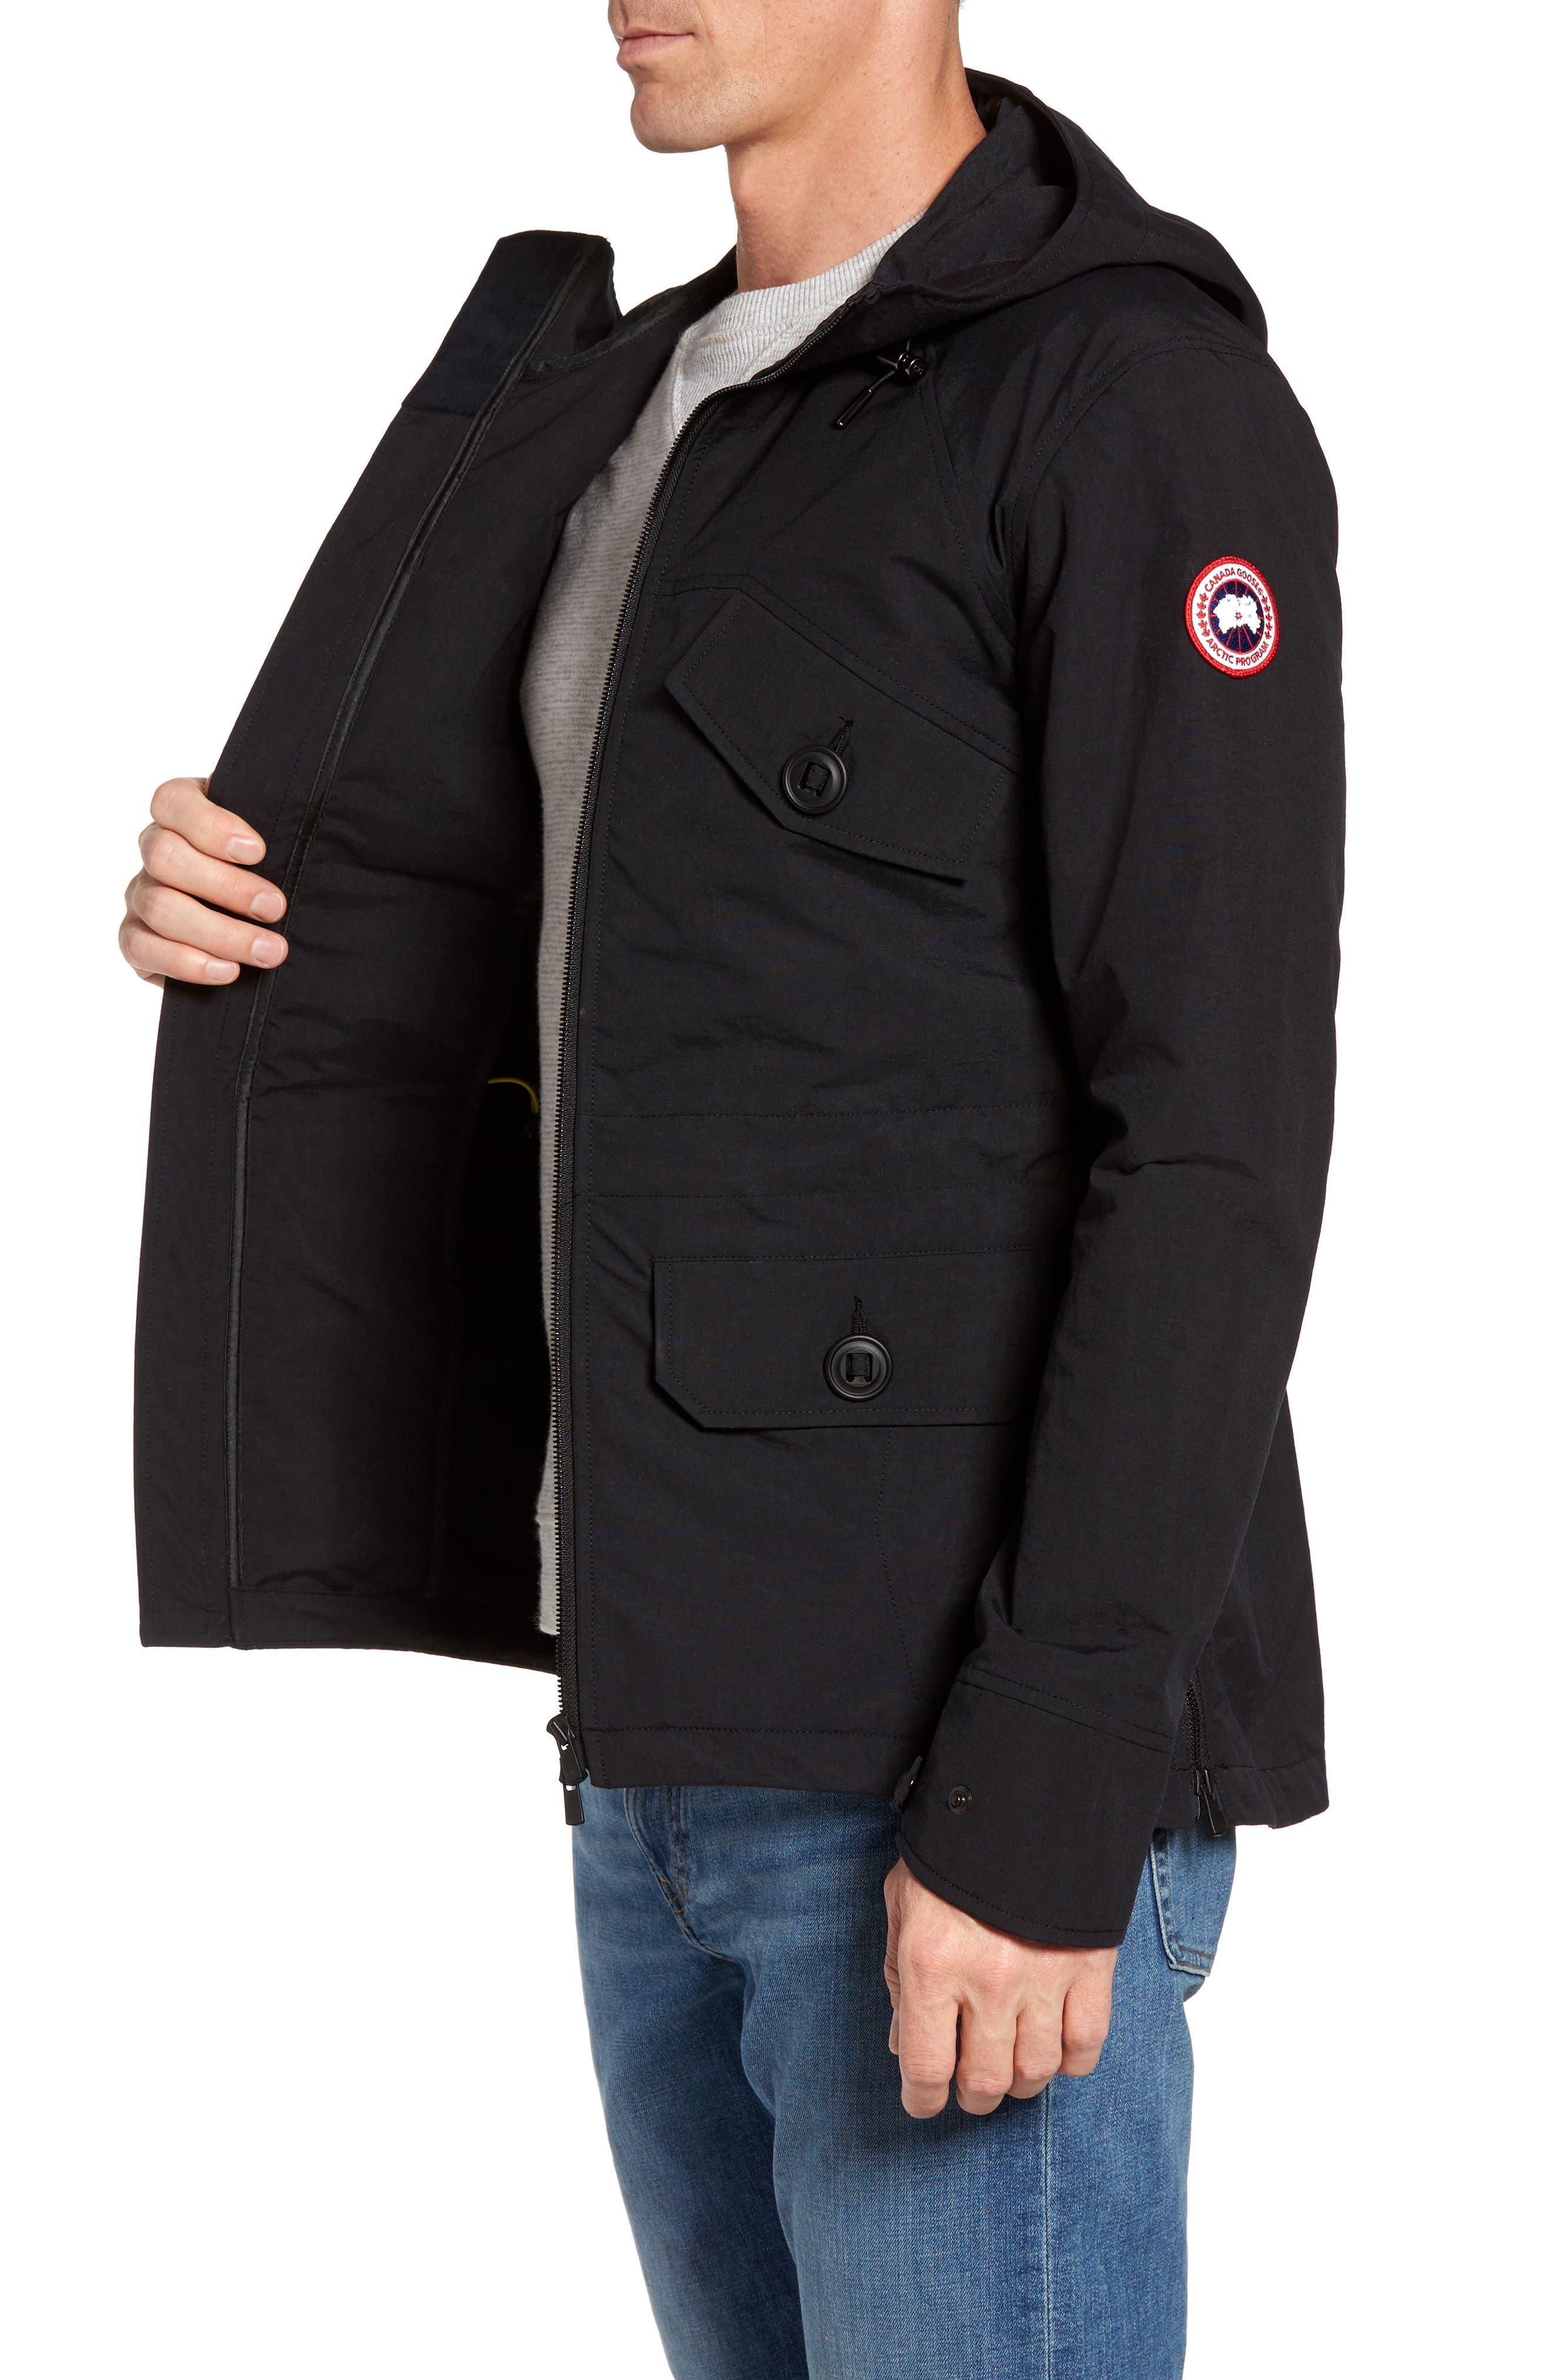 CANADA GOOSE,                             Redstone Slim Fit Hooded Jacket,                             Alternate thumbnail 3, color,                             001